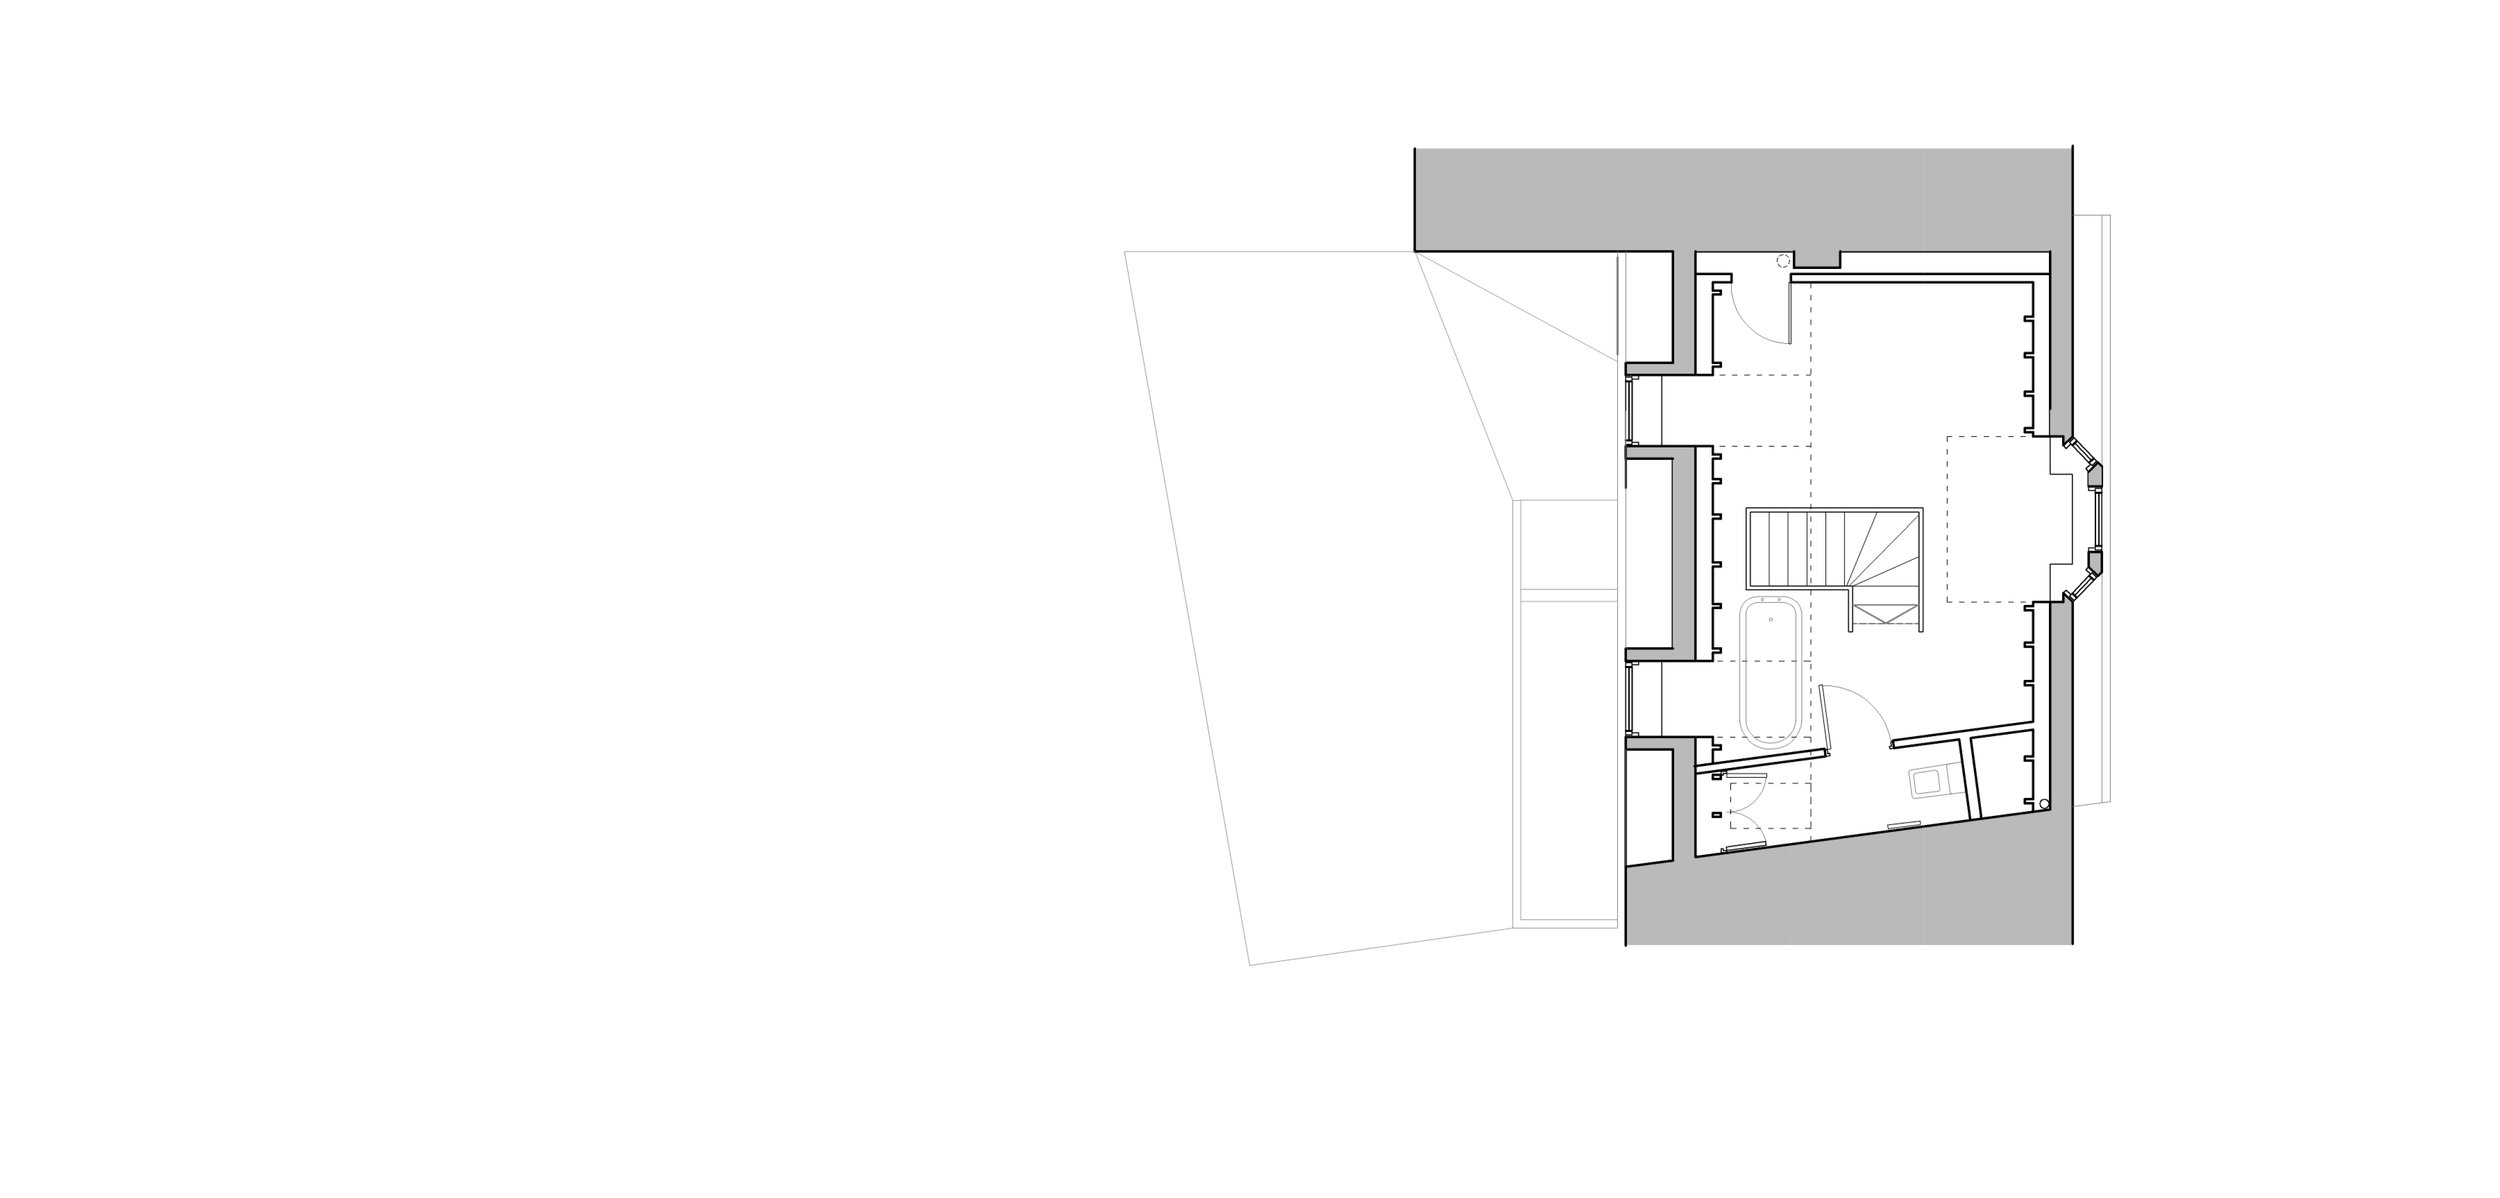 Skerrie House SF Plan.jpg